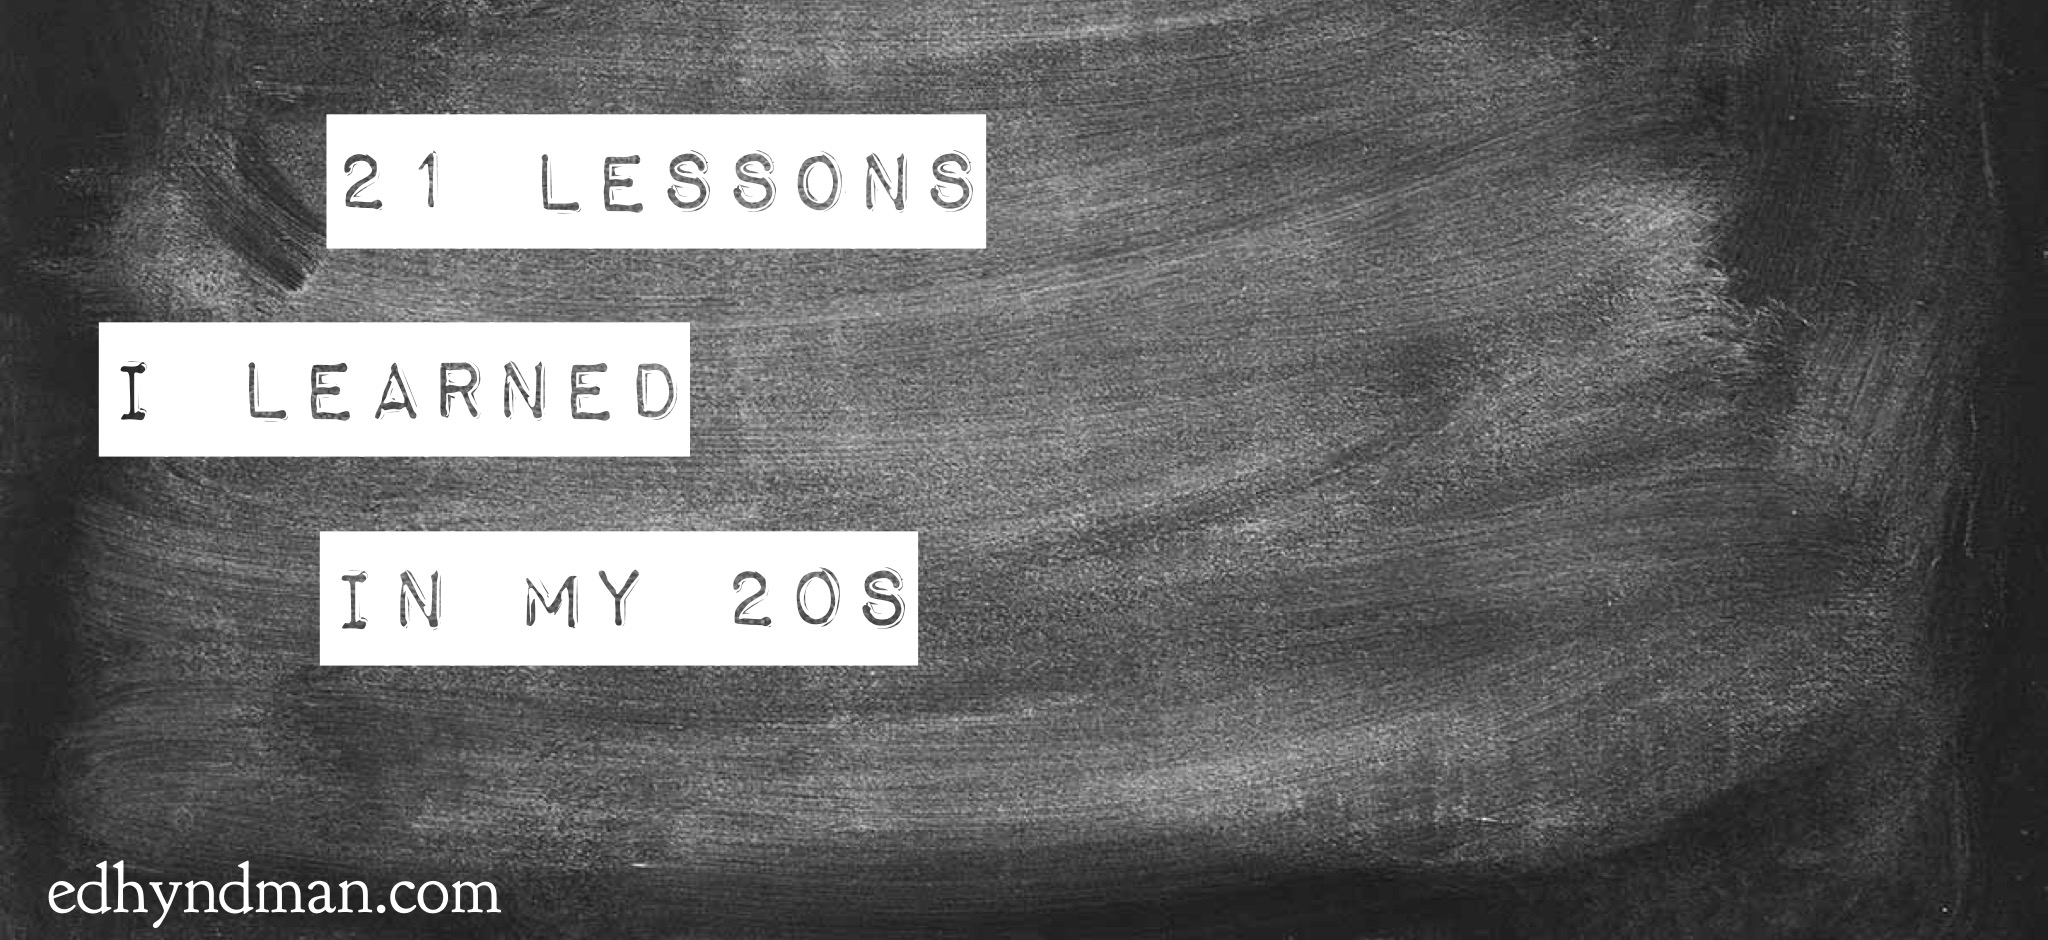 21 Lessons I Learned in my 20s